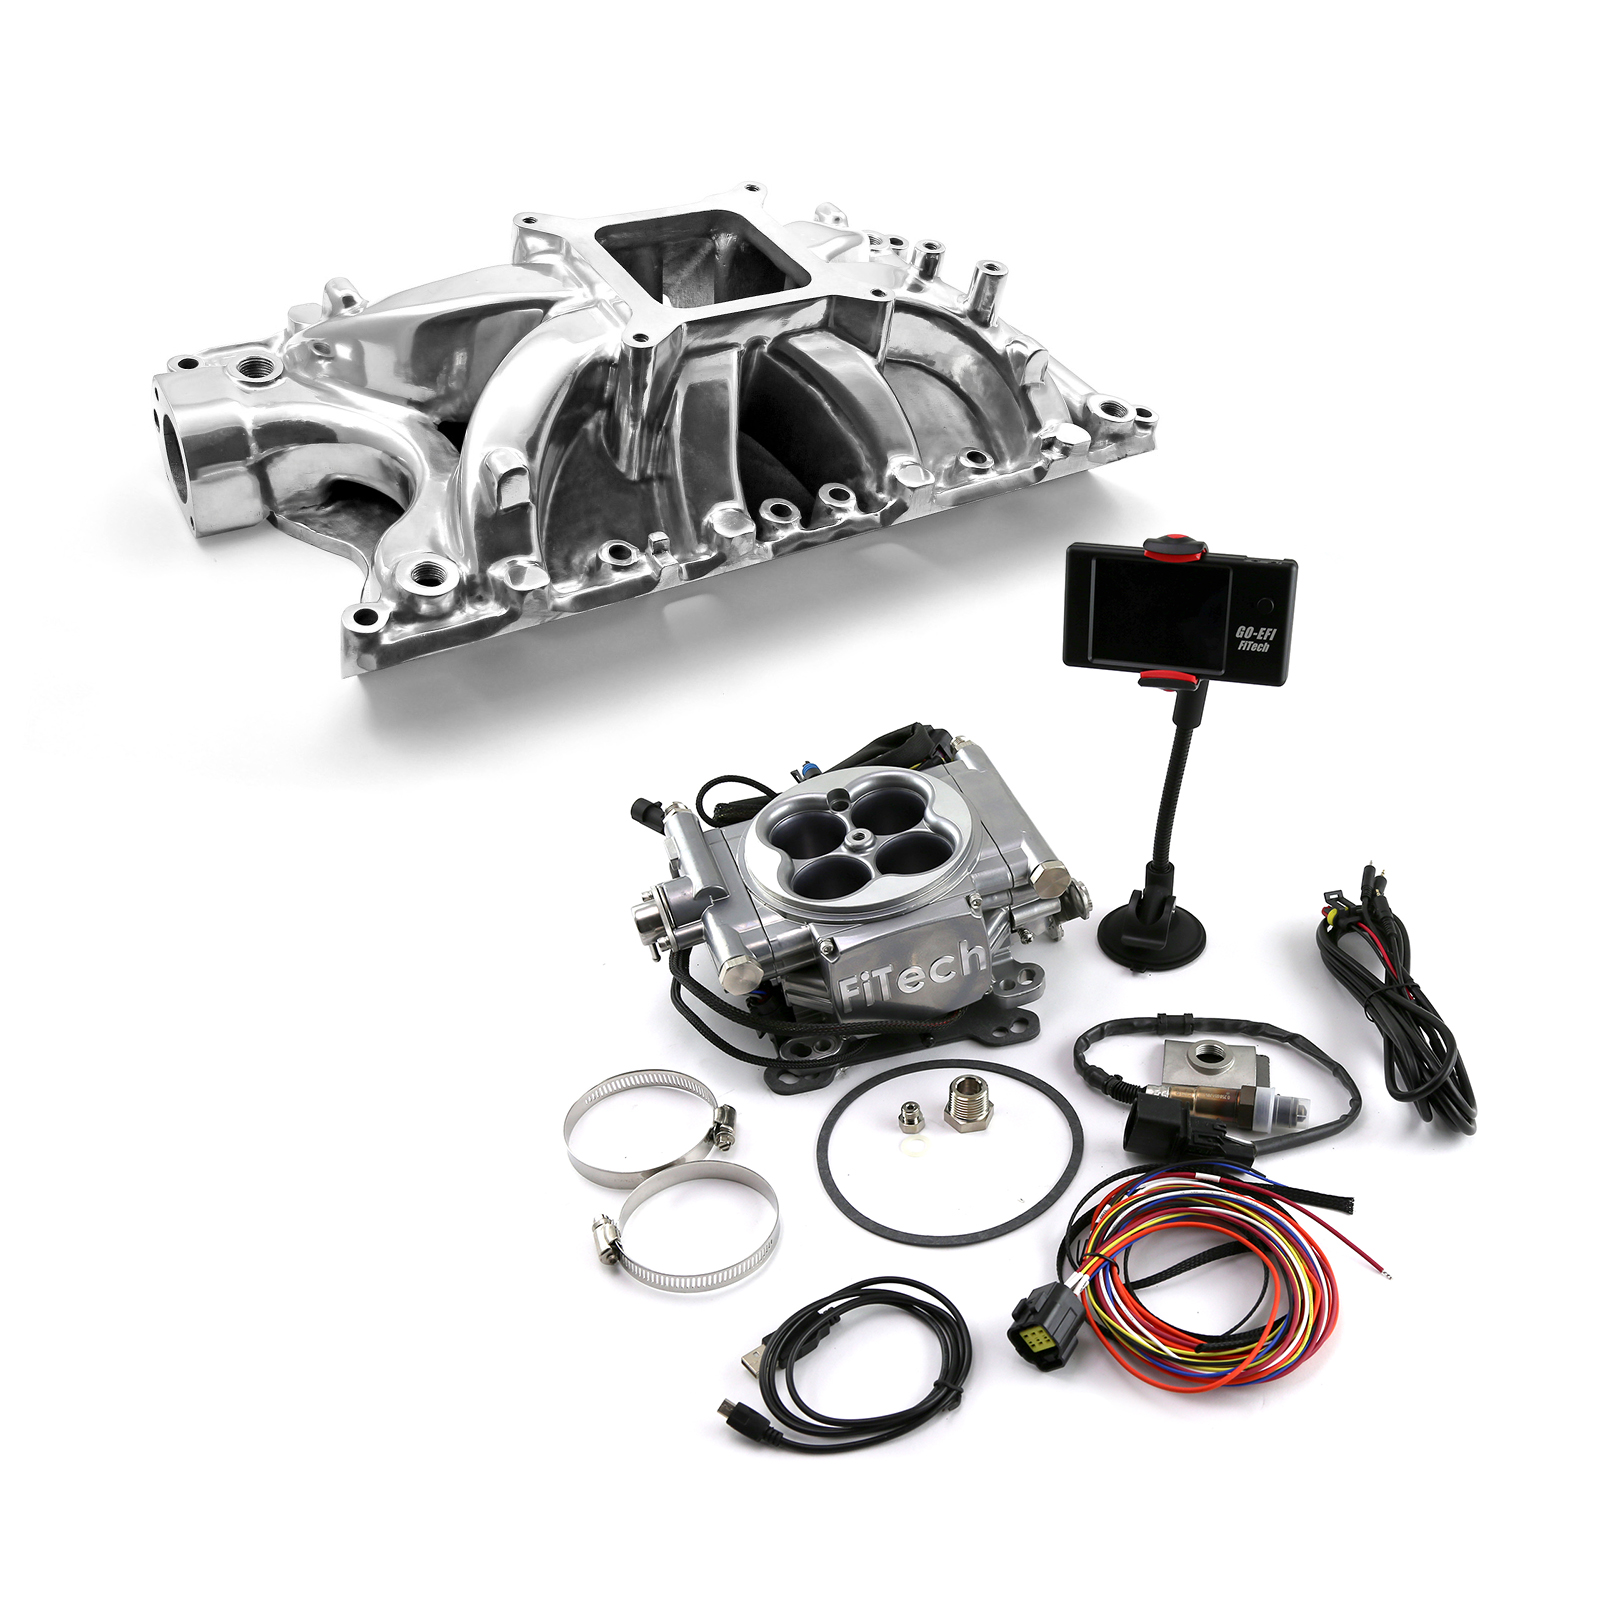 Ford 351W Windsor Shootout Manifold & FiTech Go EFI 30001 Fuel Injection